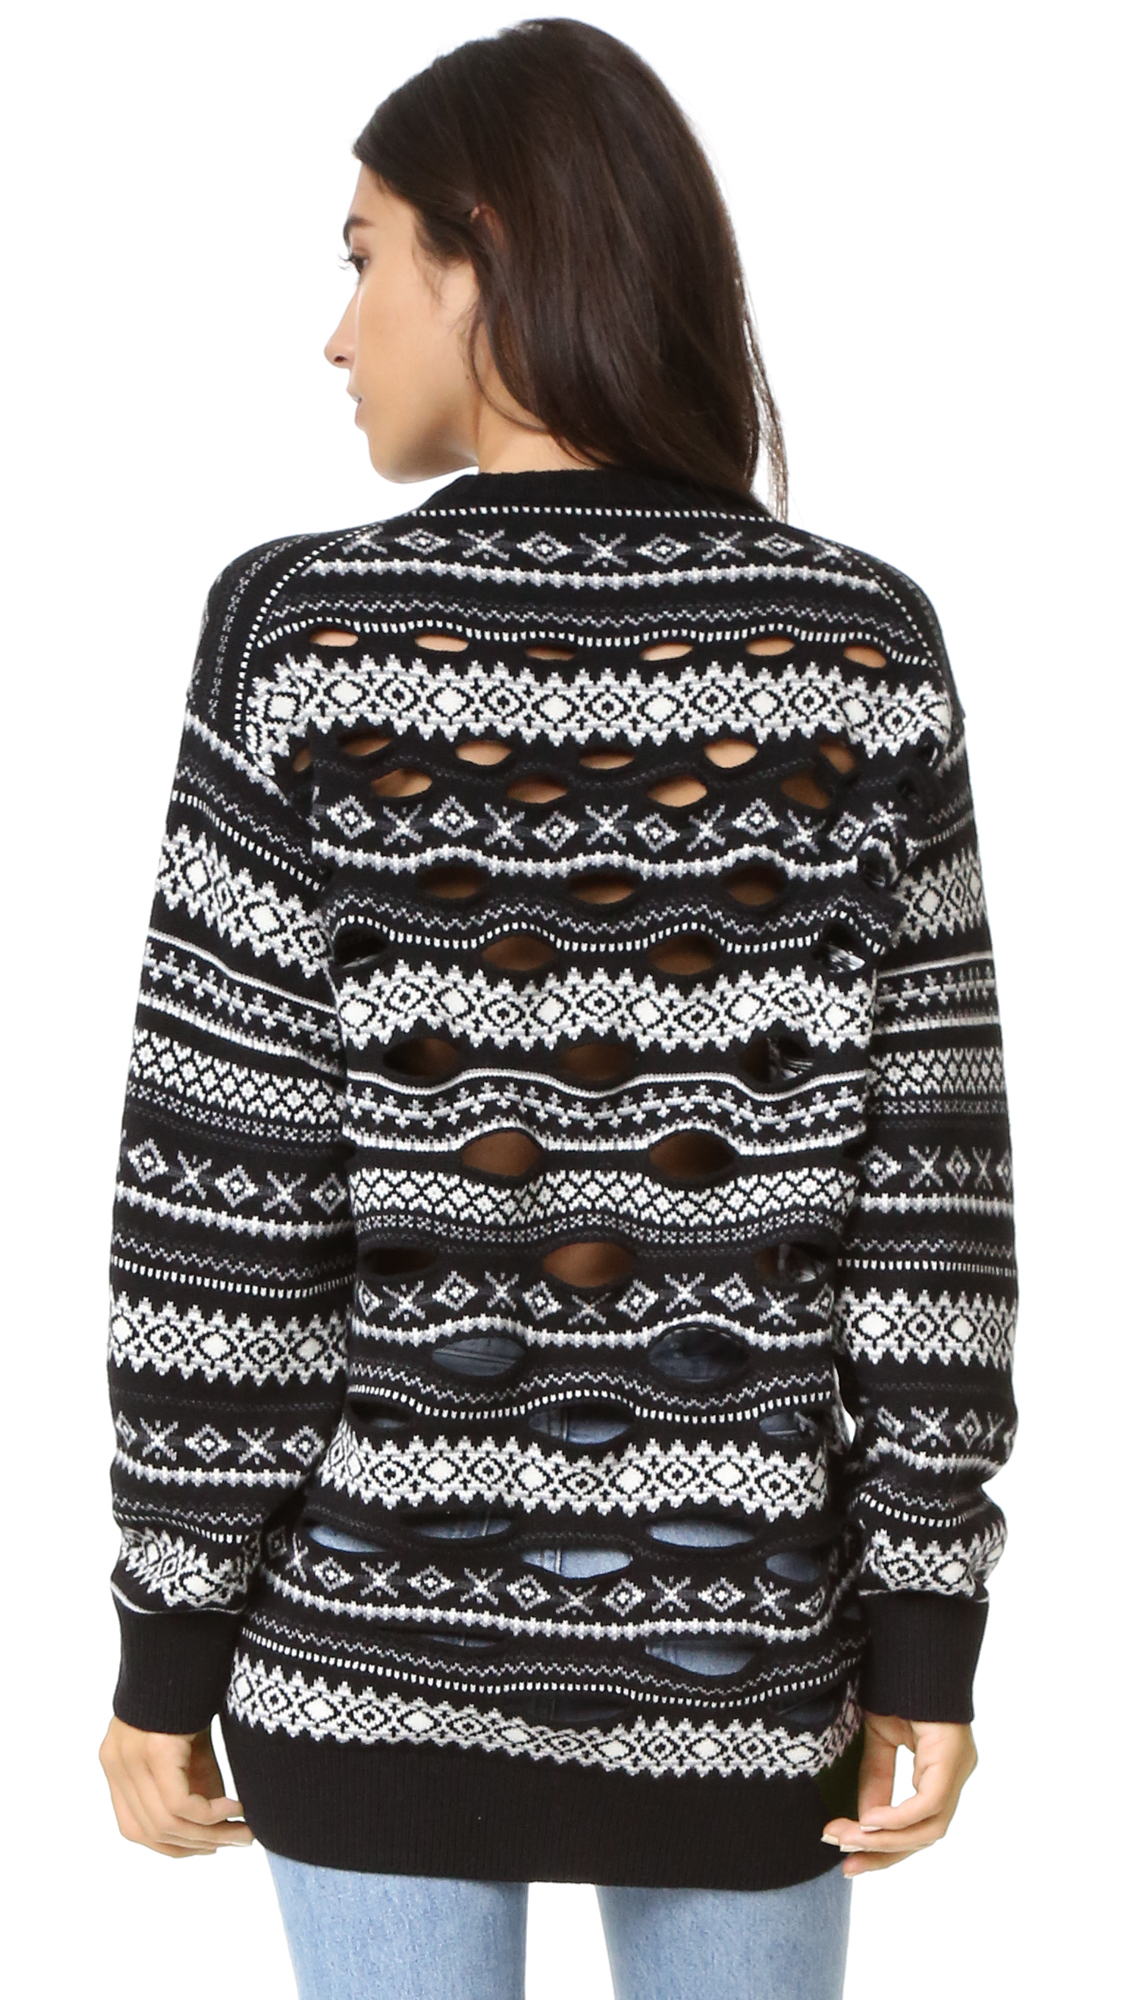 This fair isle knit Alexander Wang sweater has slits in back, giving the classic crew neck silhouette a unique, undone finish. Oversized profile. Ribbed edges and long sleeves. Semi sheer. Fabric: Fair isle knit. 50% wool/30% viscose/20%